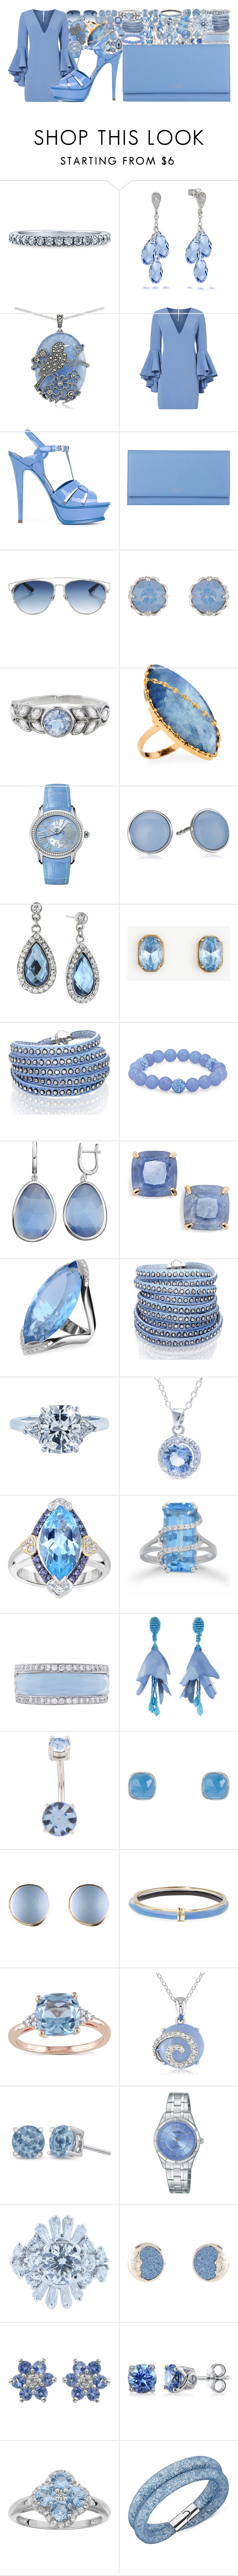 """""""Untitled #3815"""" by brooke-evans12 ❤ liked on Polyvore featuring BERRICLE, Lord & Taylor, Milly, Yves Saint Laurent, Smythson, Christian Dior, Accessorize, Cathy Waterman, Lana and Audemars Piguet"""